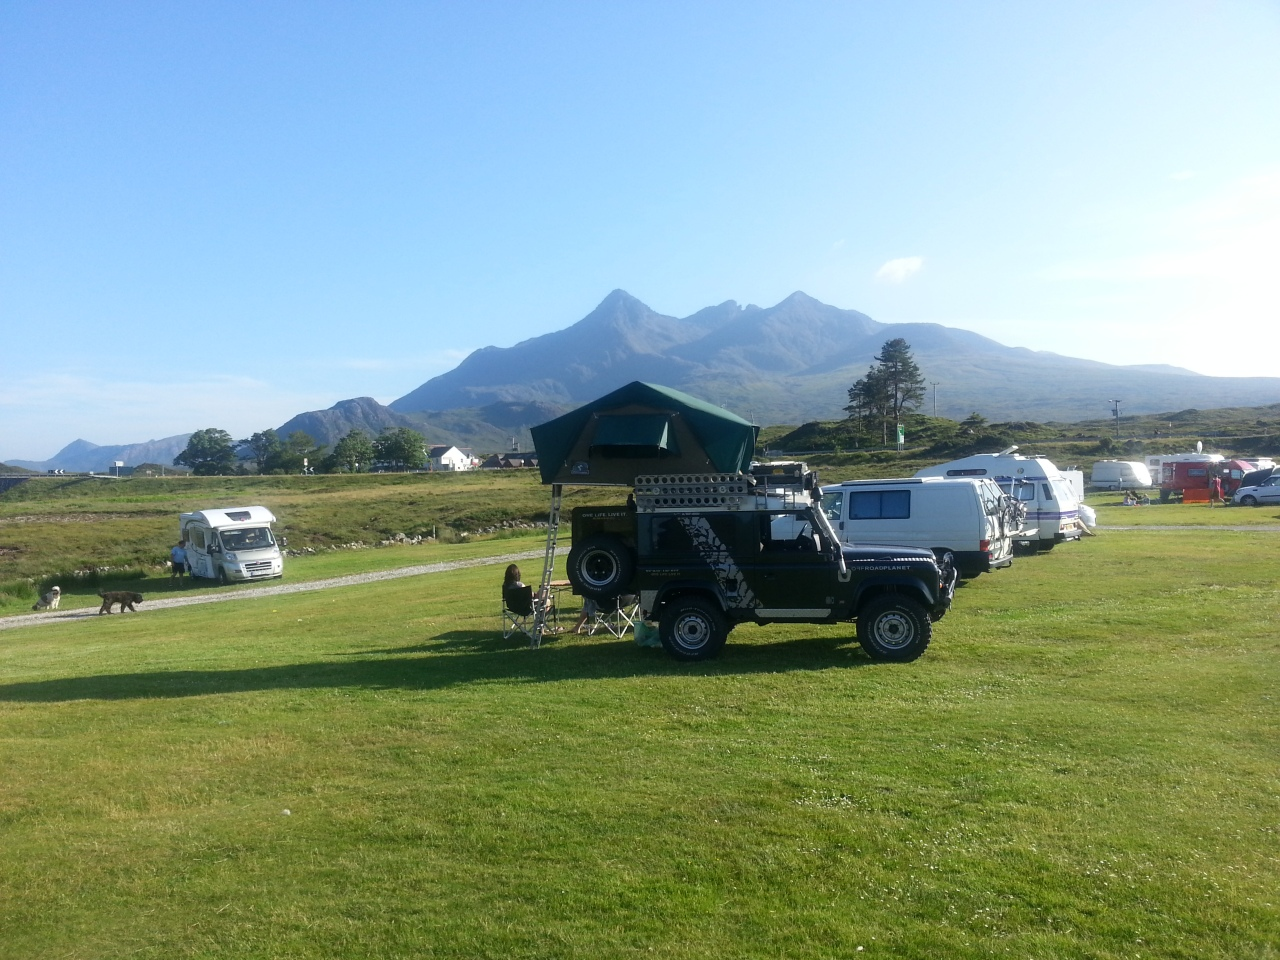 I am still not entirely sure what these German tourists with a safari tent on top of their Landrover were expecting to see in north west Scotland...